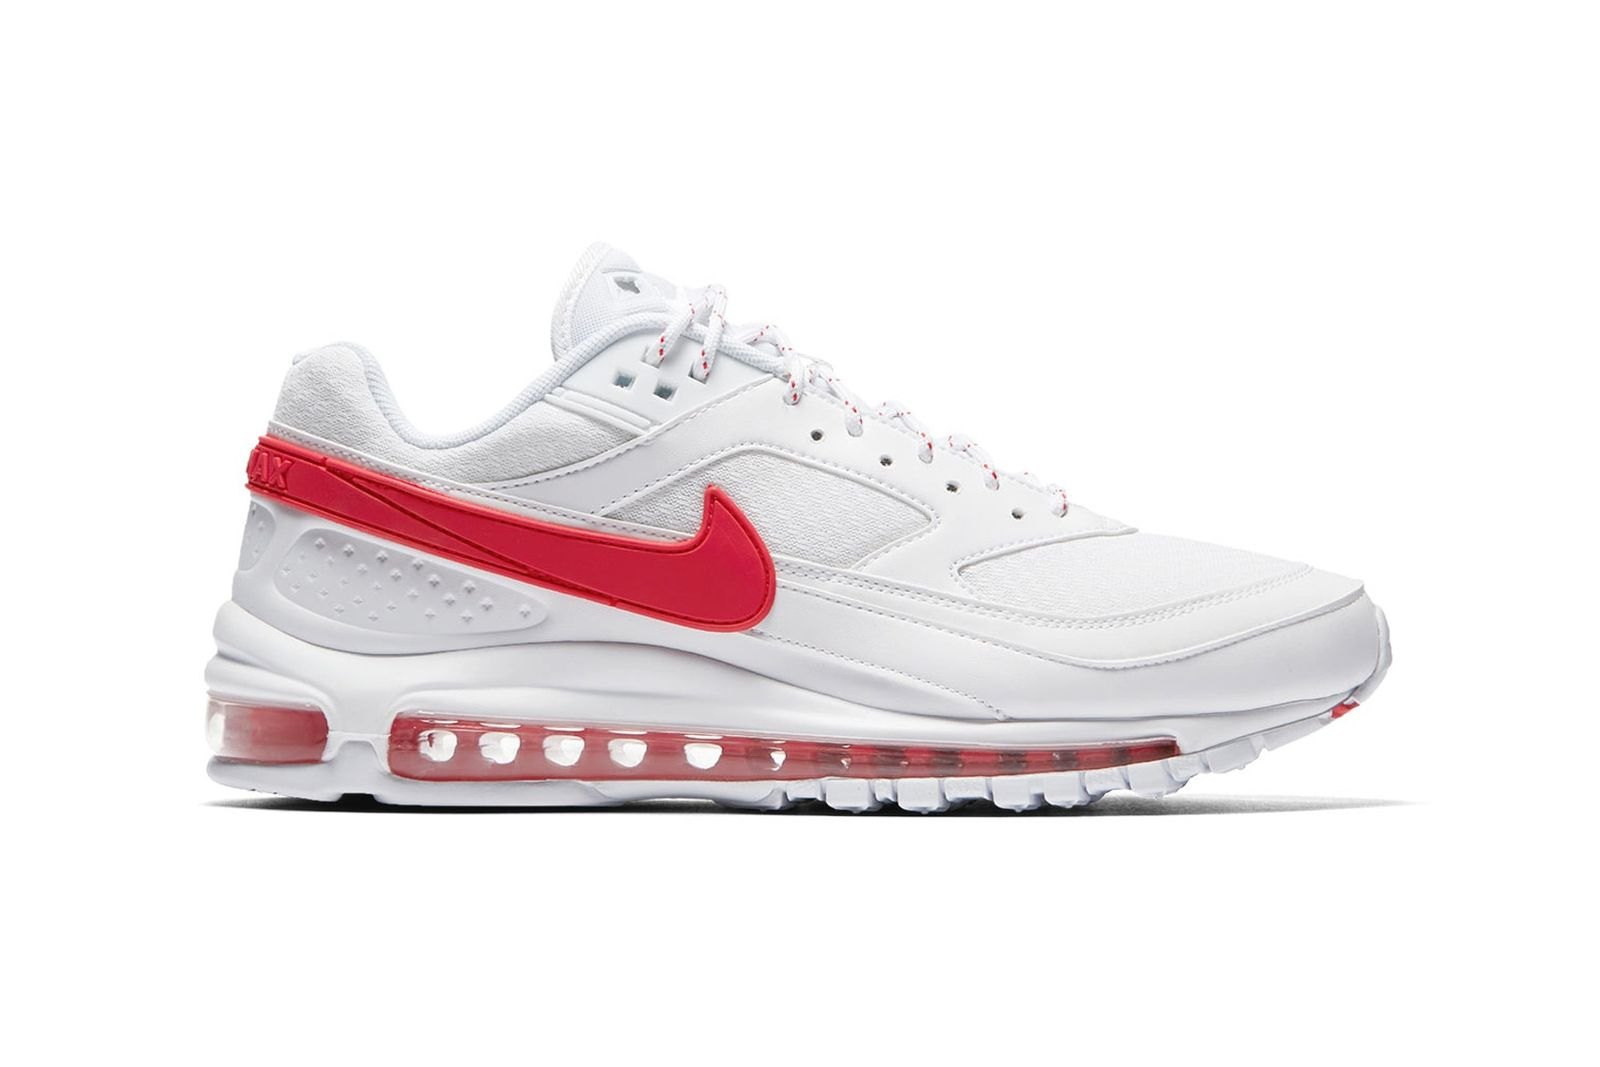 Skepta x Nike Air Max 97/BW: Release Date, Price & More Info